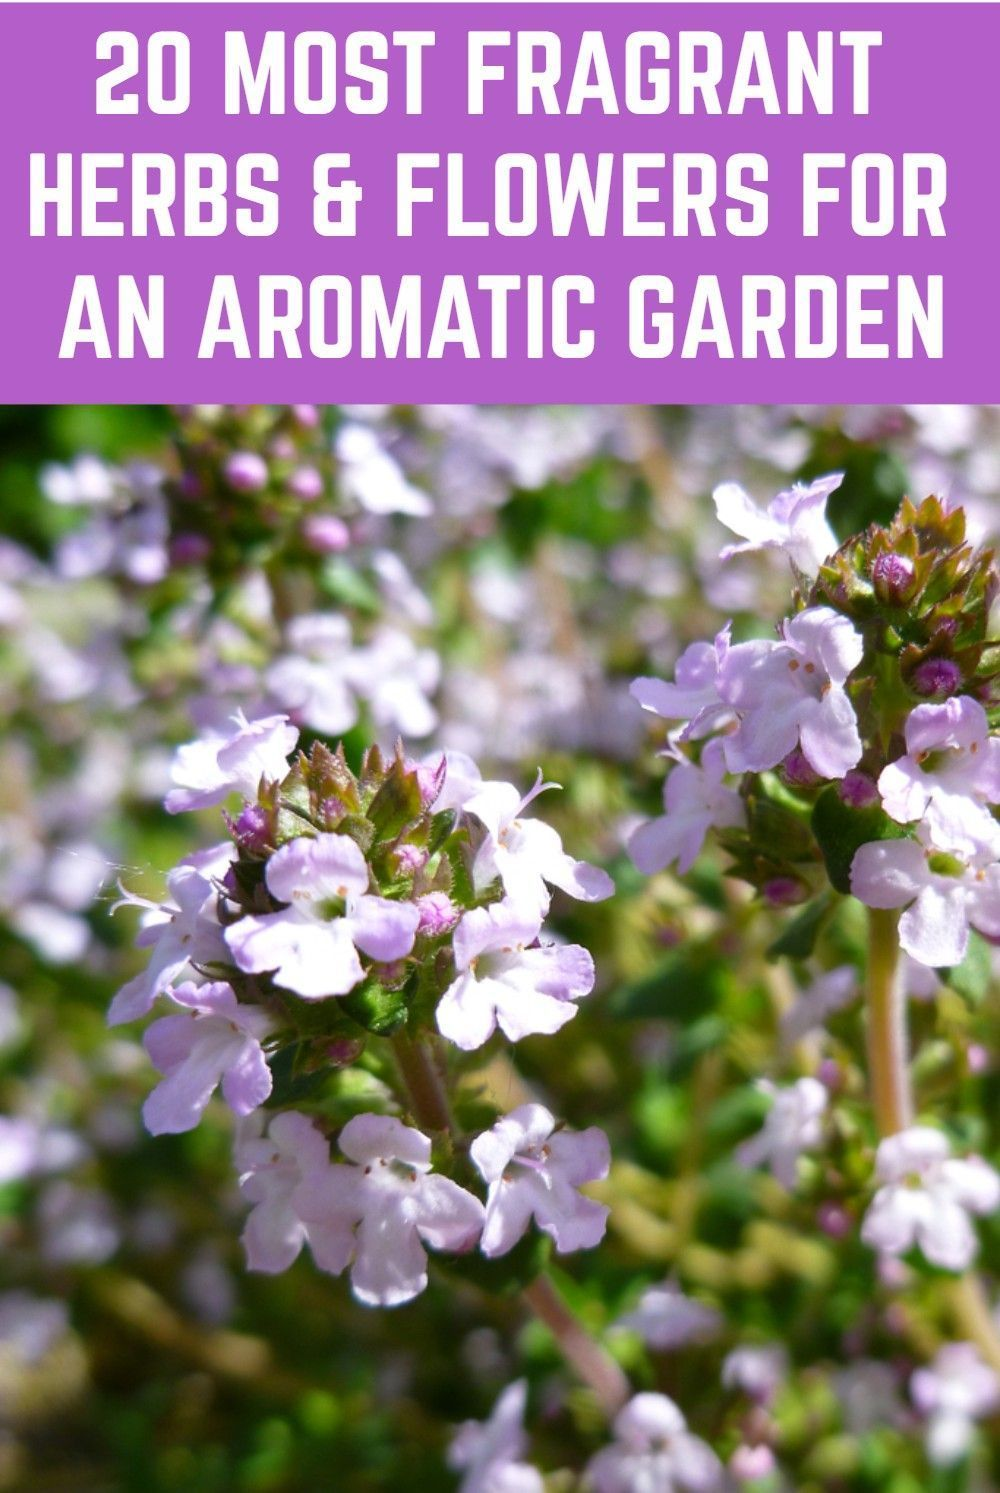 Not only are these herbs and flowers beautiful, they are the best smelling plants for an unbelievably aromatic garden.Not #only #are #these #herbs #and #flowers #beautiful, #they #are #the #best #smelling #plants #for #an #unbelievably #aromatic #garden. #aromatic